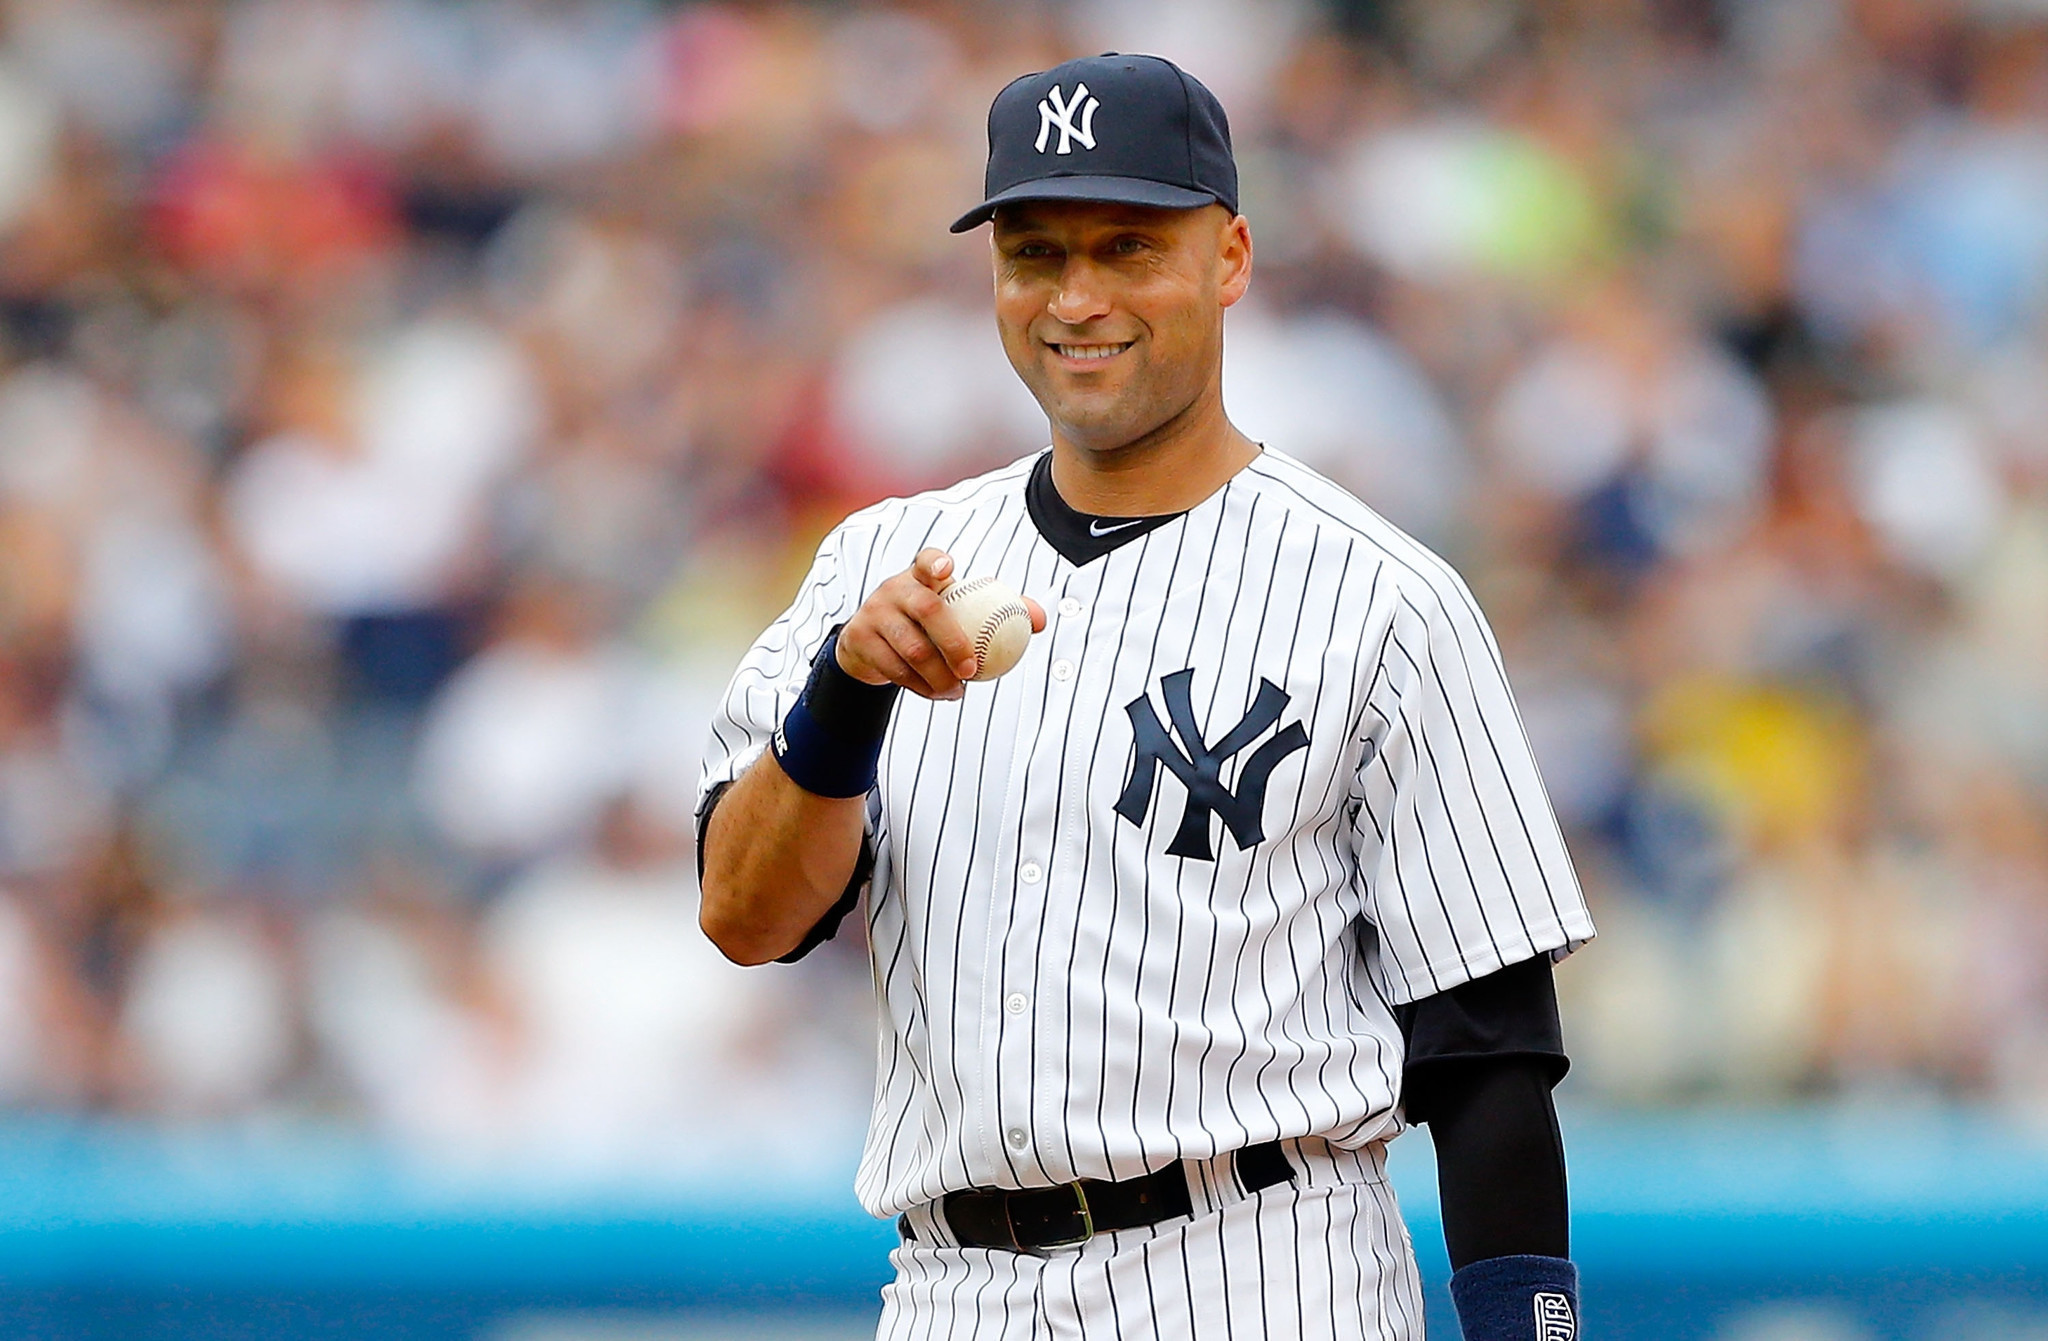 East 161st street in the Bronx to be renamed 'Jeter Street': report